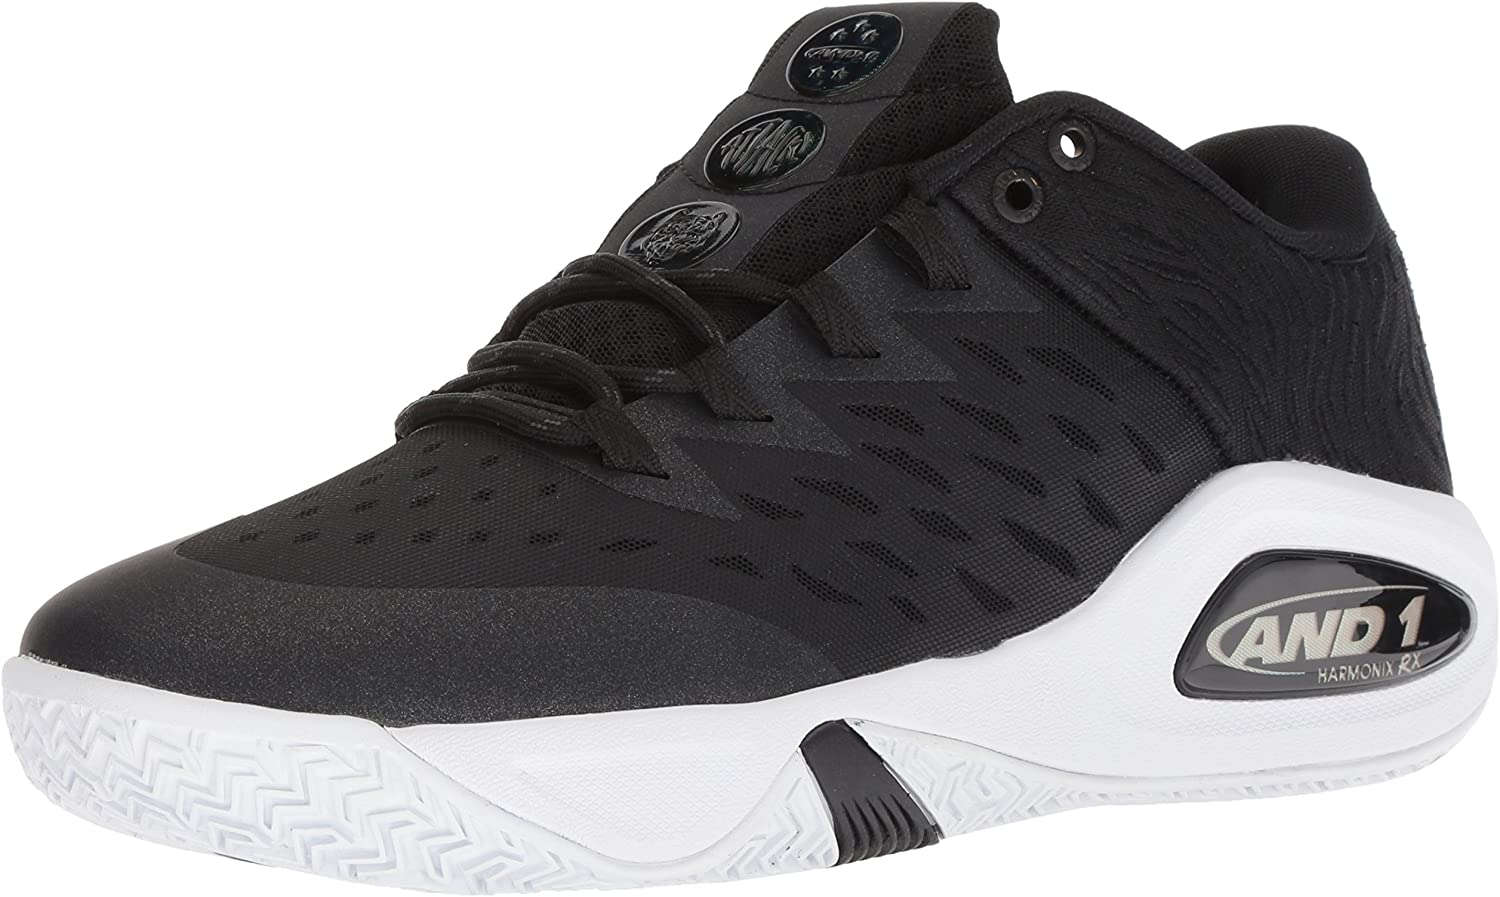 AND1 Men's Attack Low Basketball shoes